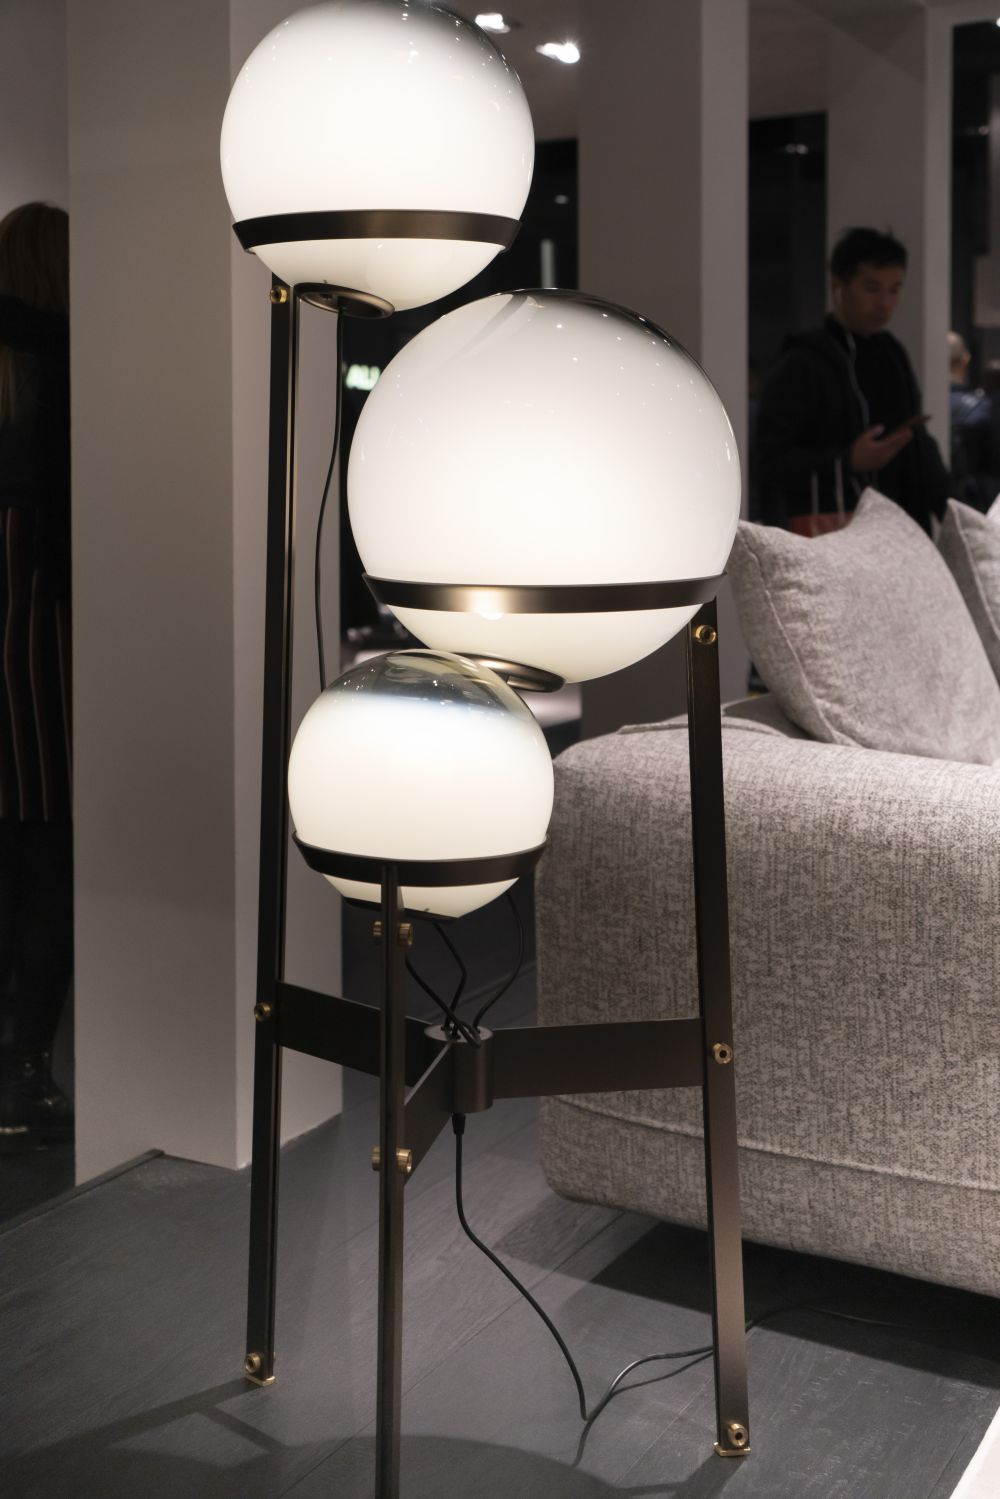 Arketipo lamps design - Lighting Fixtures that Will Add a Bid Dose of Drama to Your Room